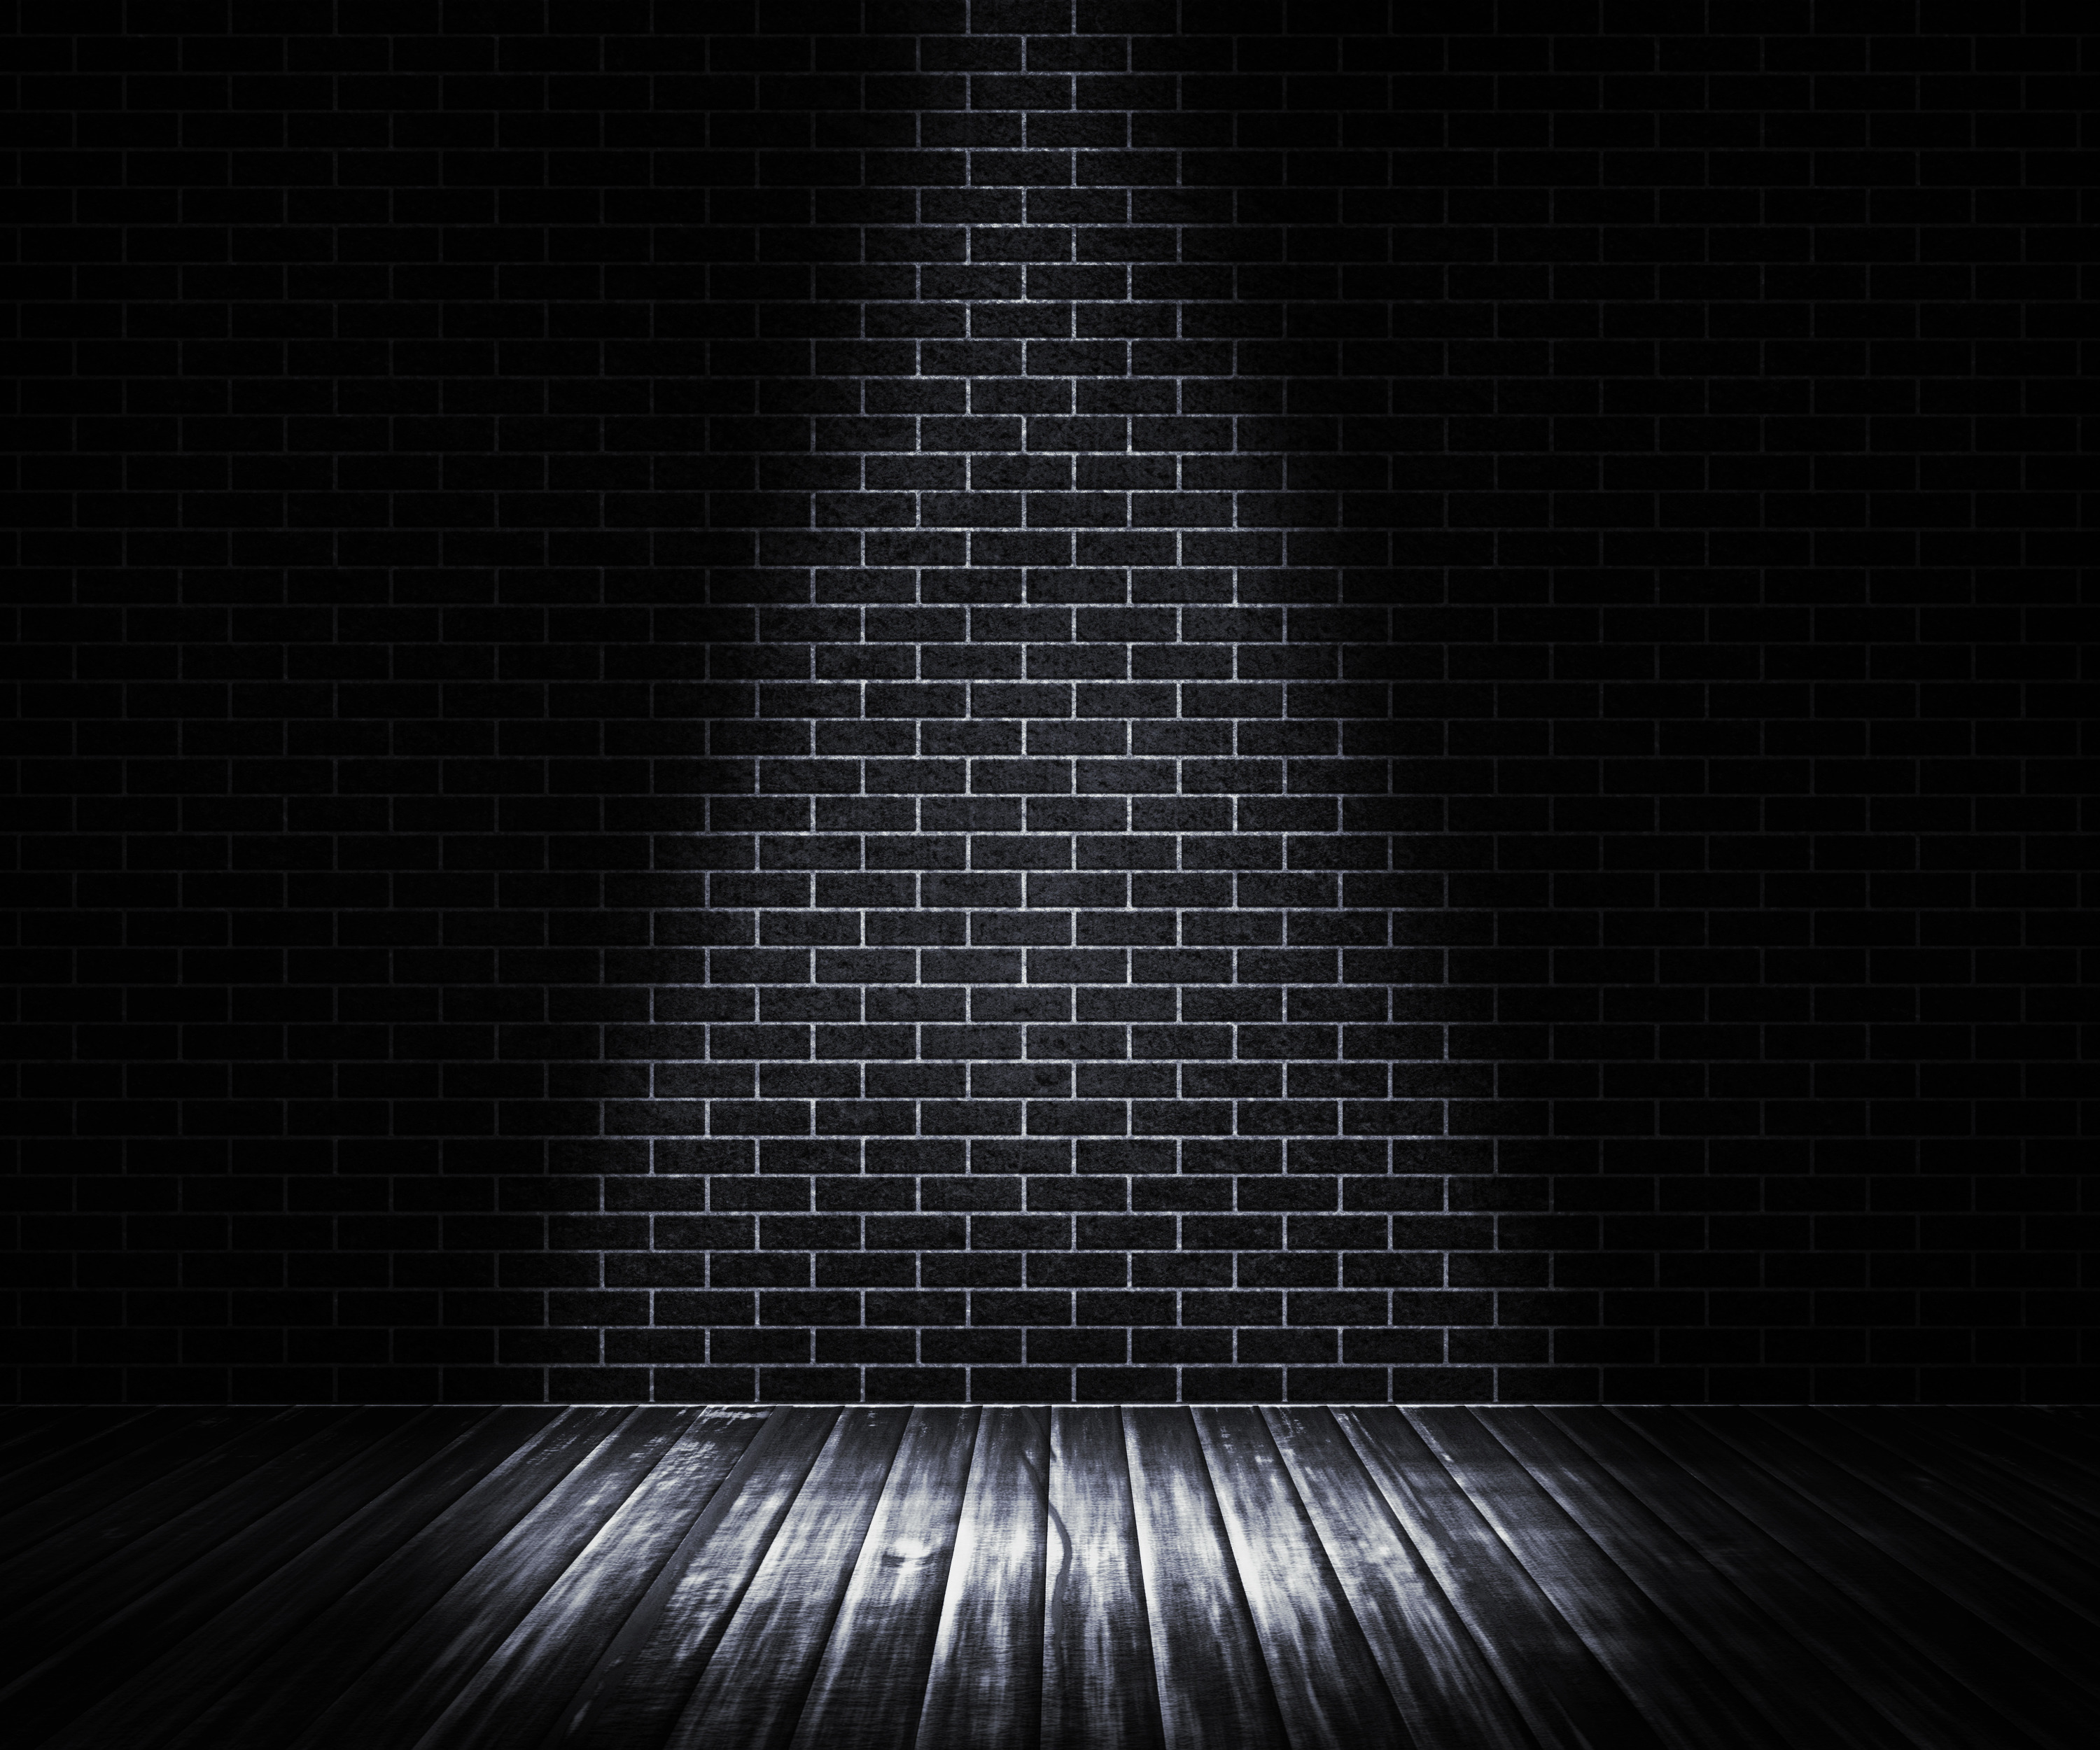 black-interior-spotlight-backdrop_fJwEcv9u